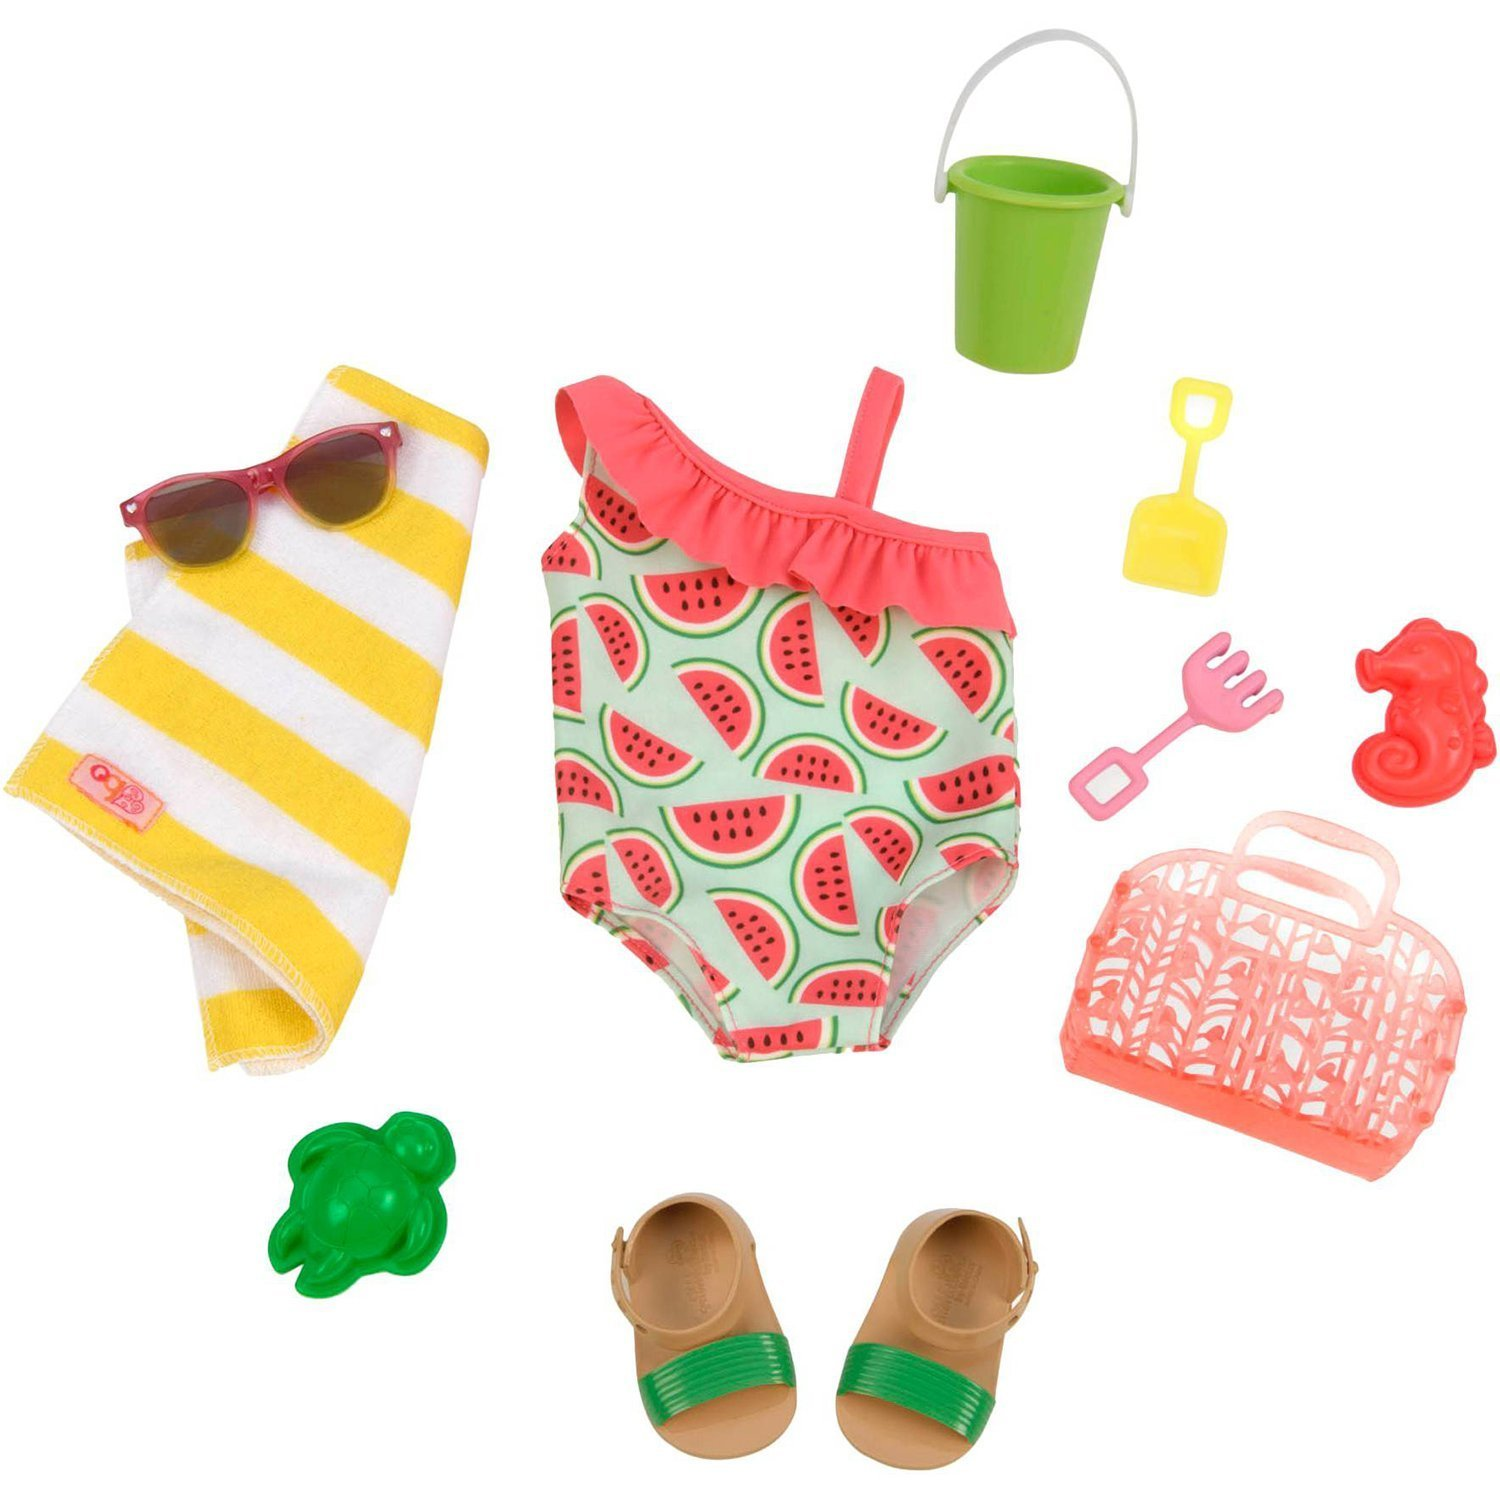 Our Generation: Regular Outfit - Watermelon Swimsuit image